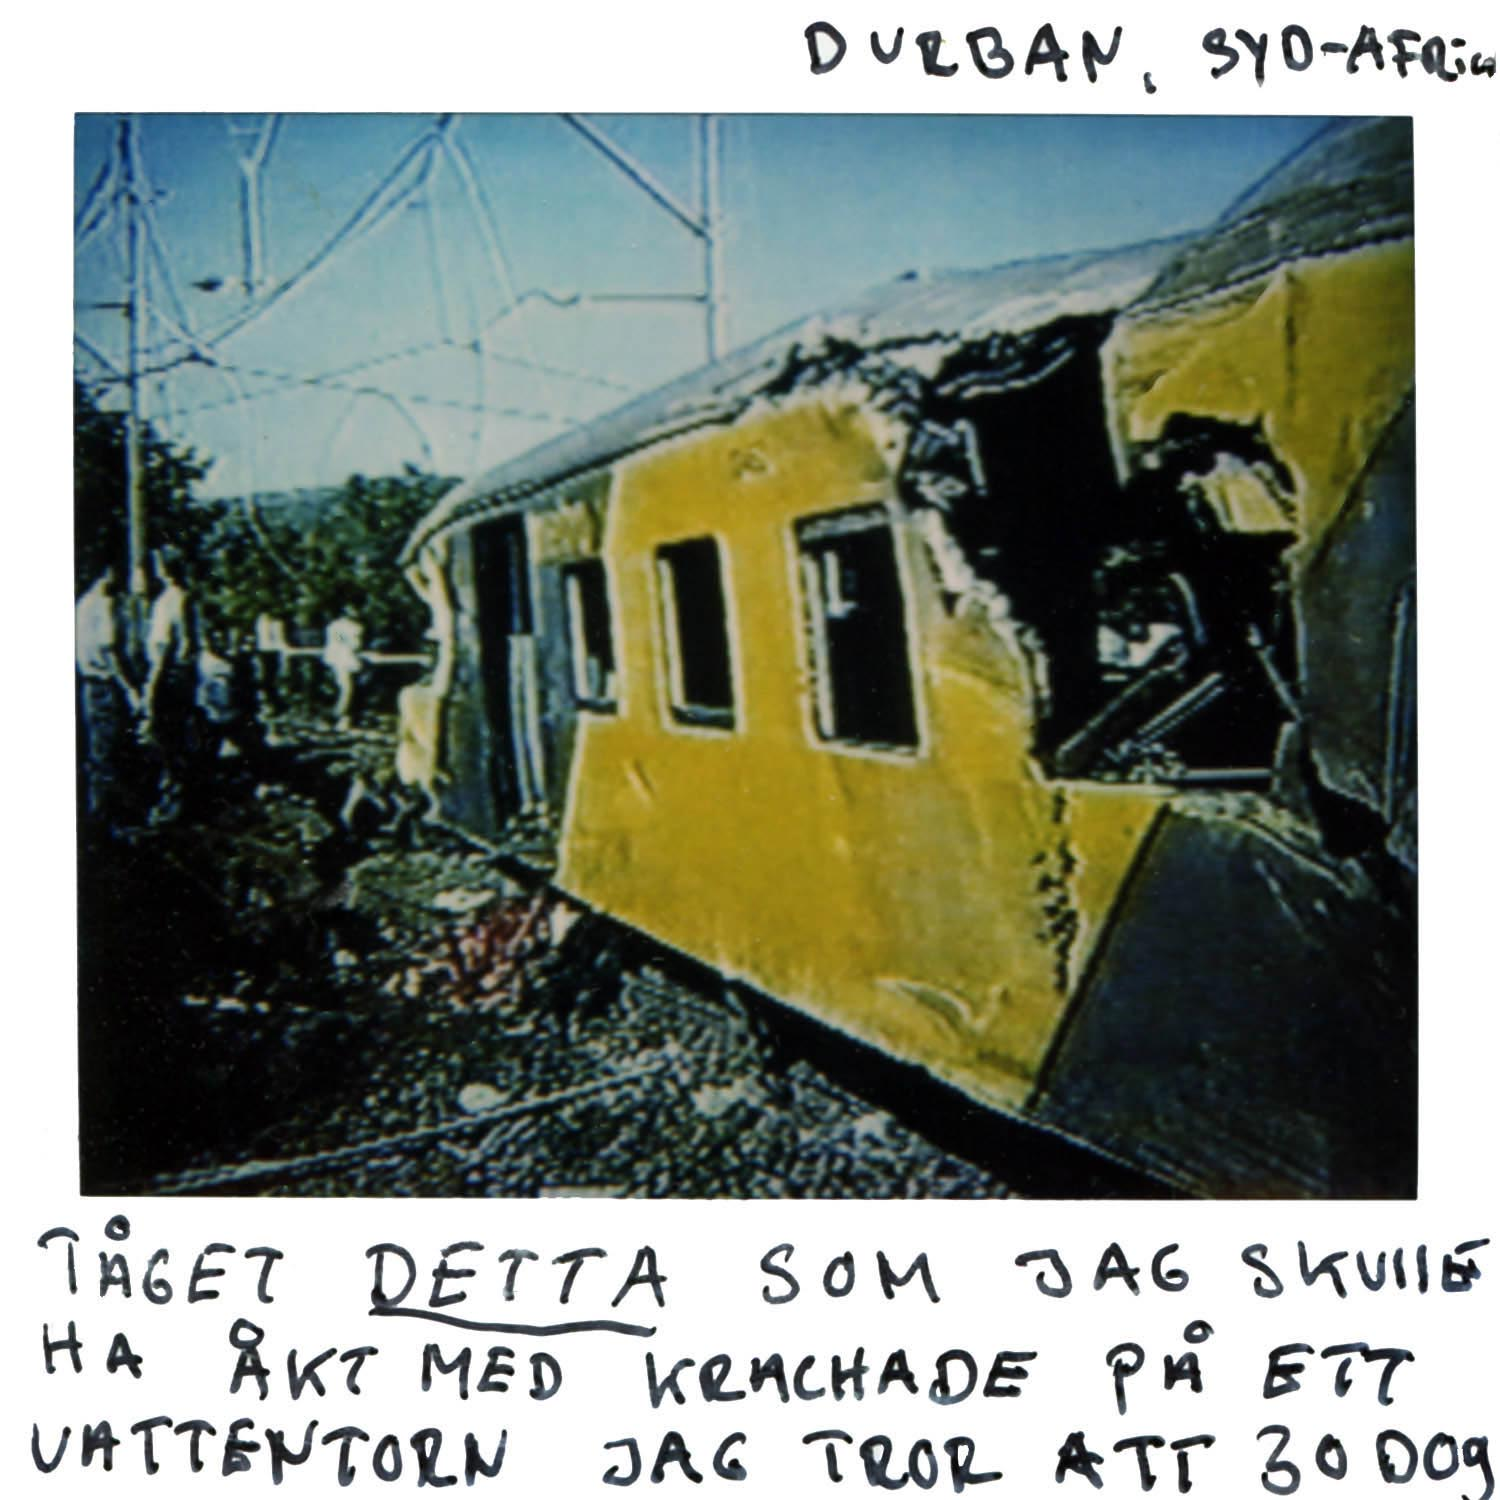 Durban South Africa  It was this train that I would have gone with but it crashed into a water tower, i think 30 was killed.